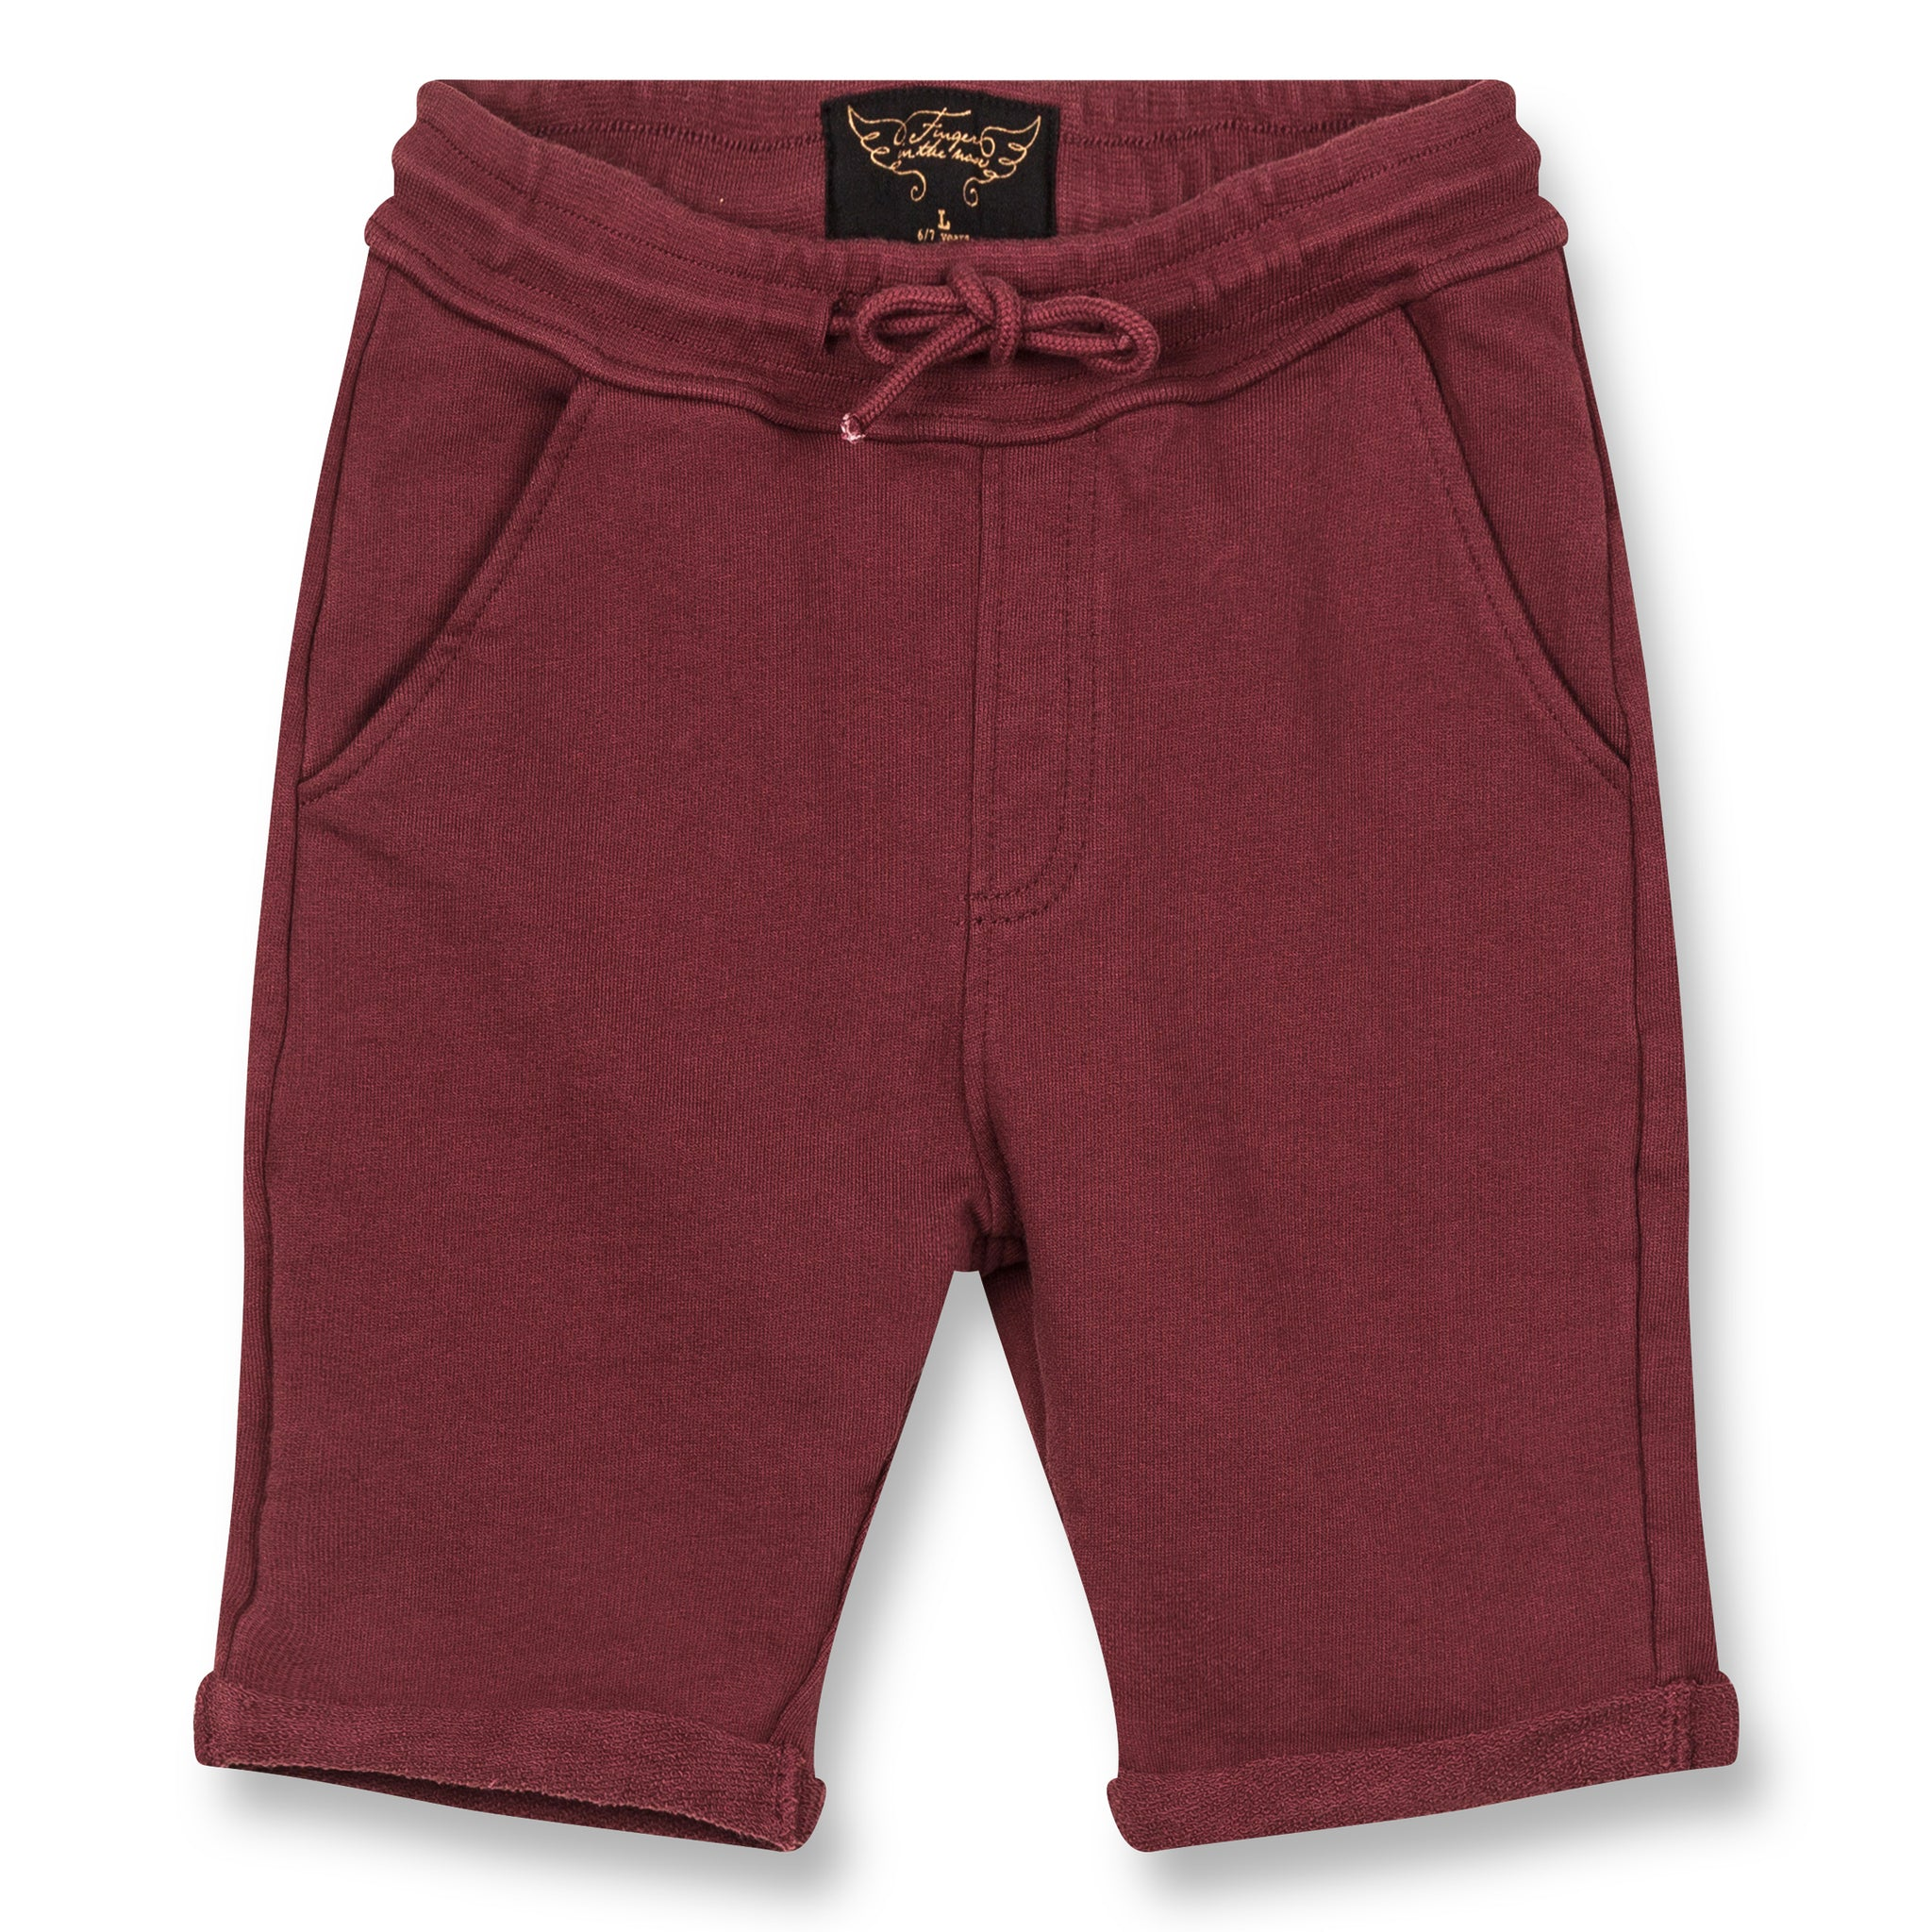 GROUNDED Burgundy - Comfort Fit Bermudas 1